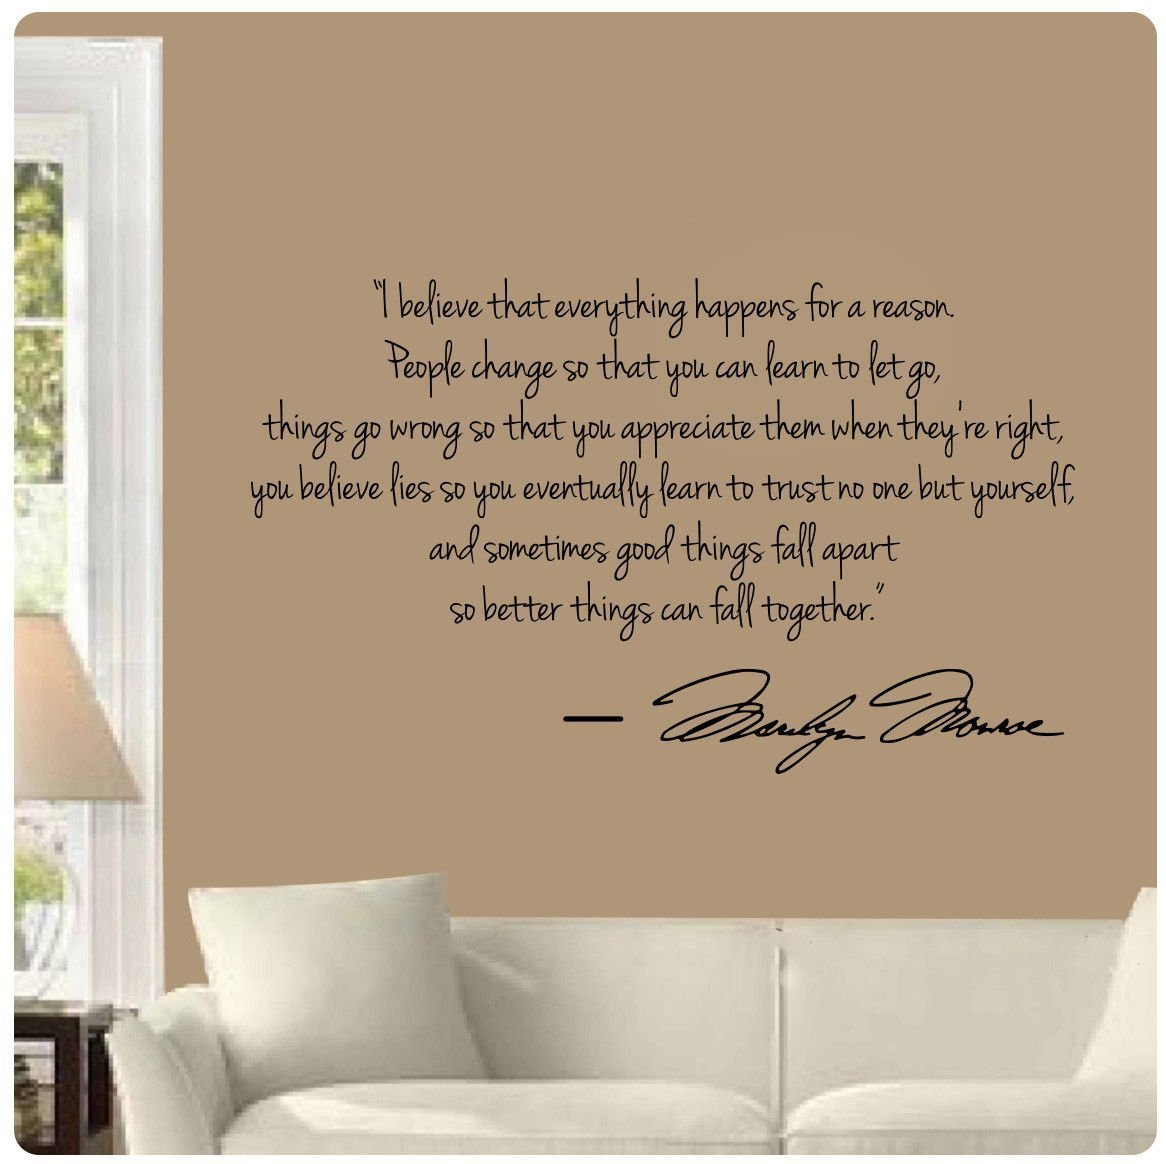 Elegant Marilyn Monroe Wall Decal Decor Quote I Believe Things Happen...Large Nice    Other Products   Amazon.com